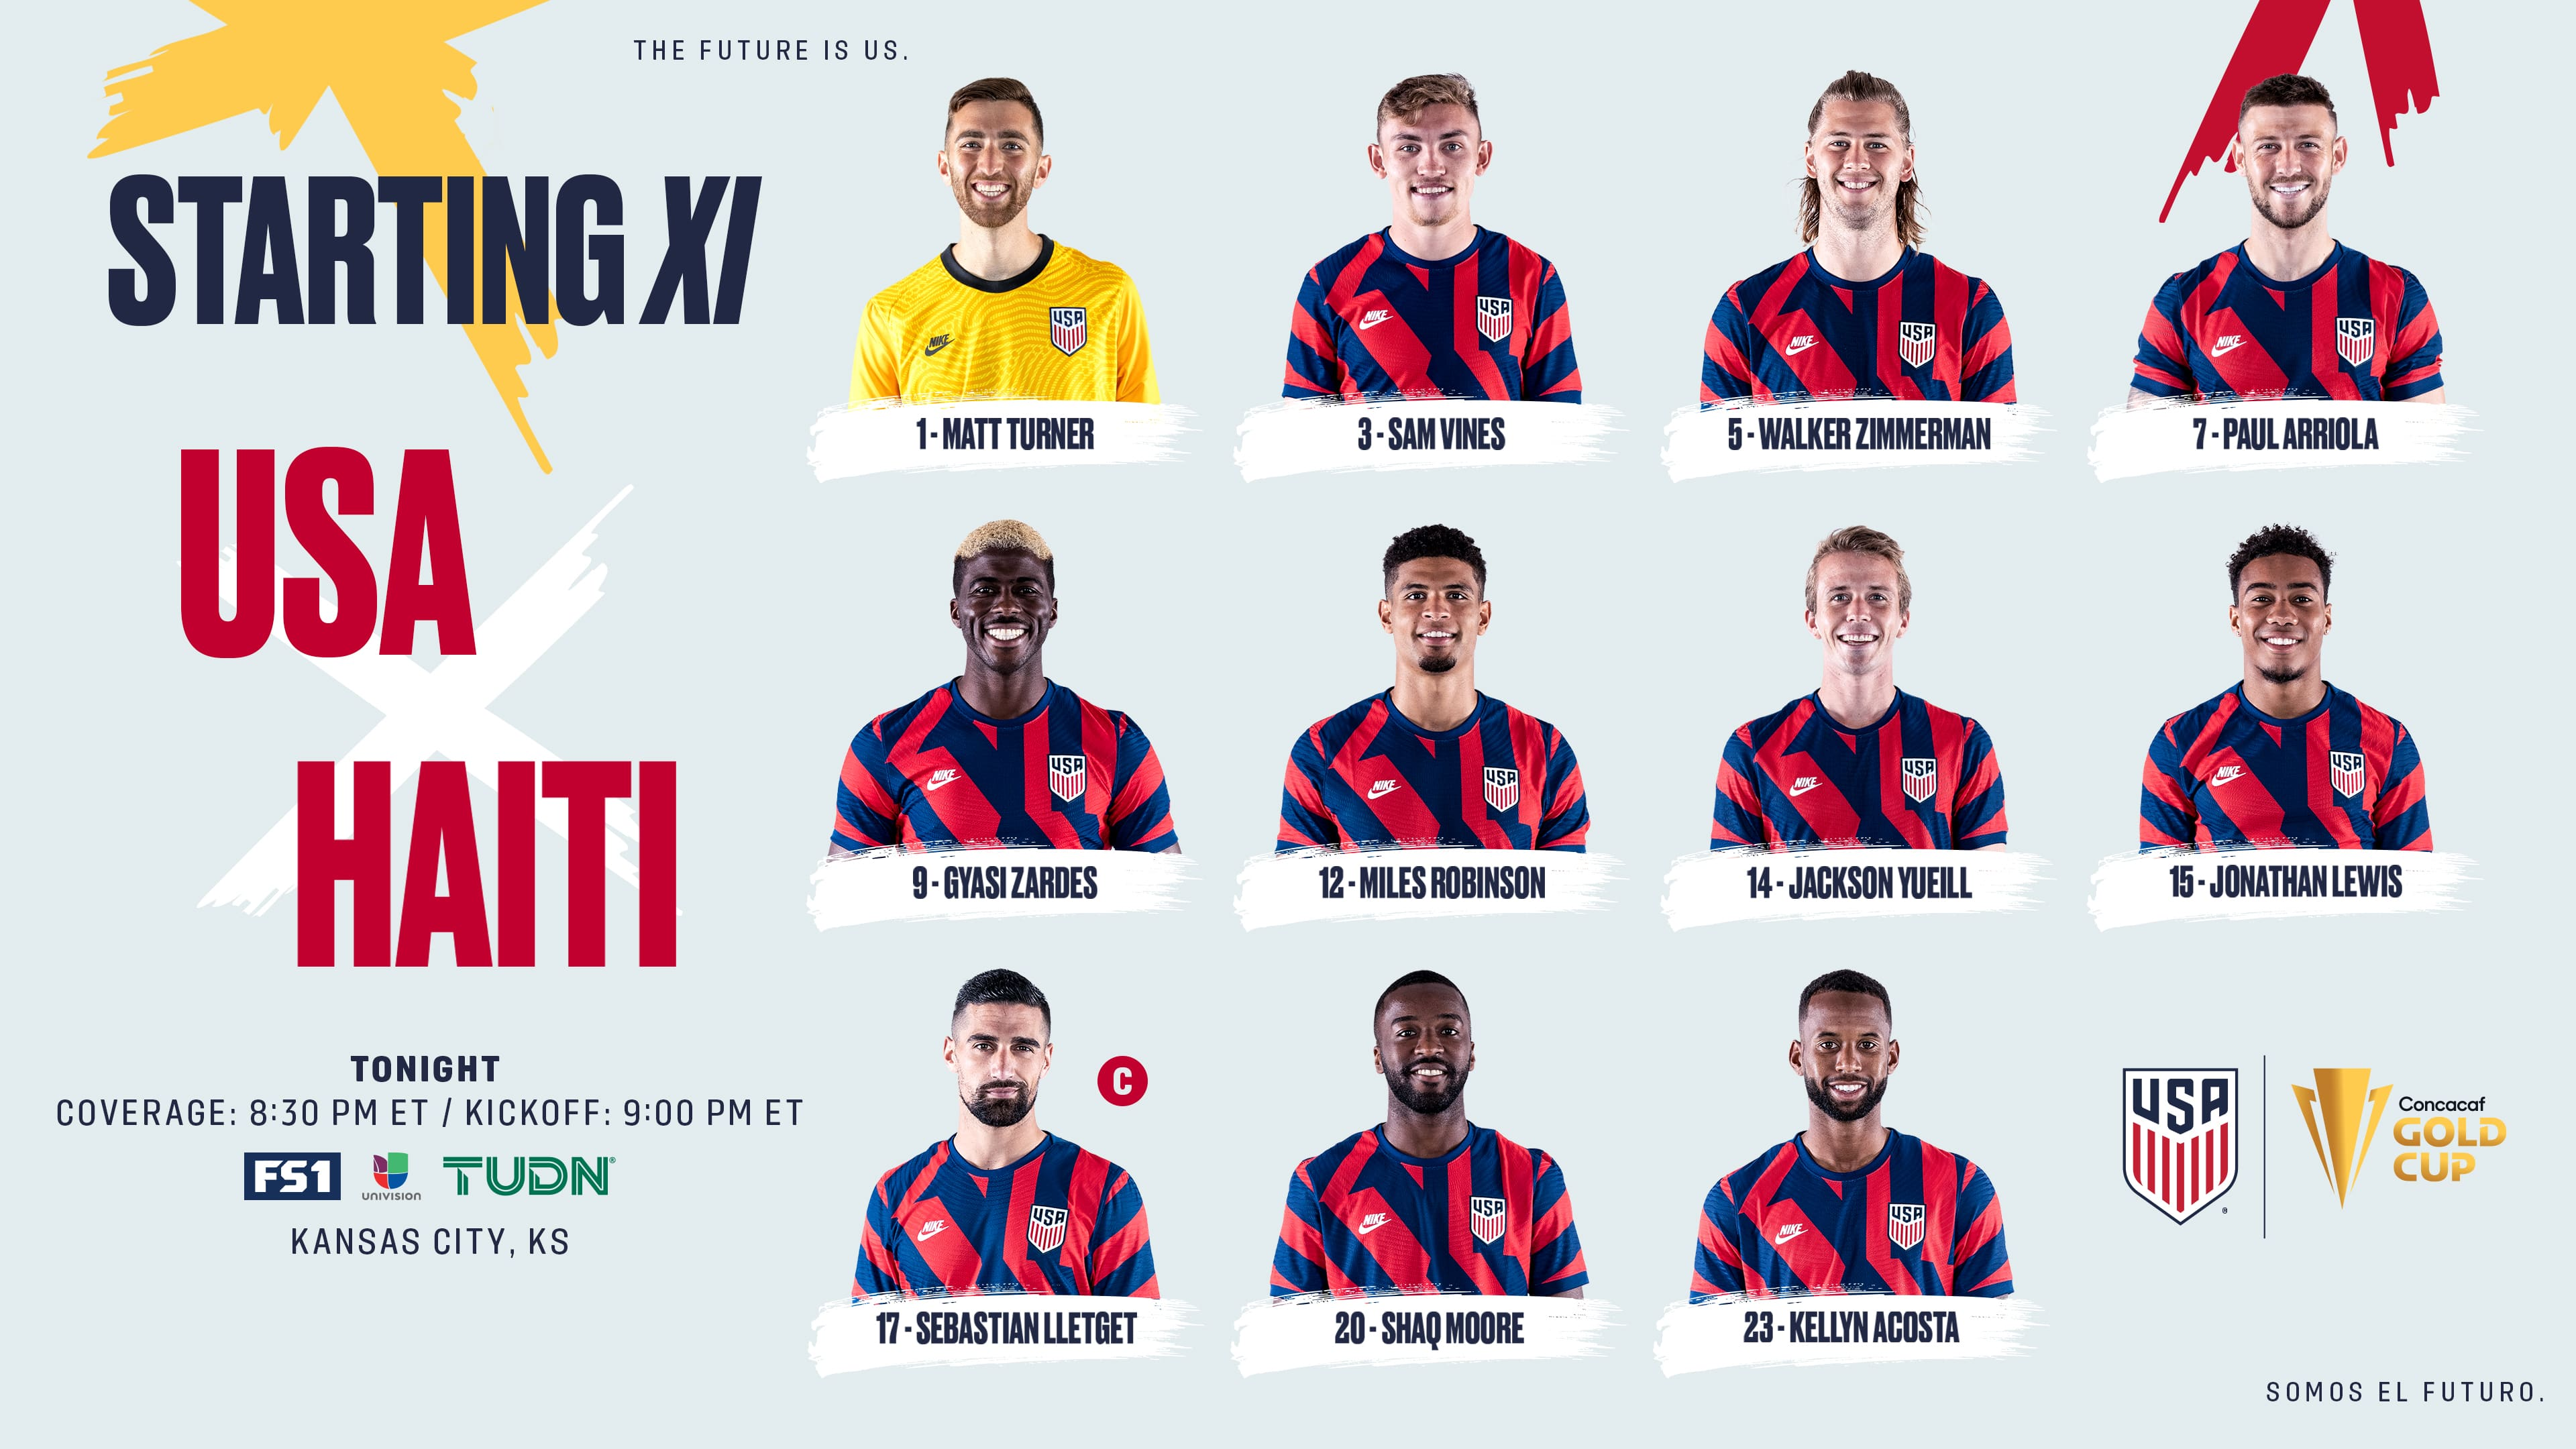 2021 Concacaf Gold Cup: USA vs Haiti - Starting XI, Lineup Notes, TV Channels & Start Time